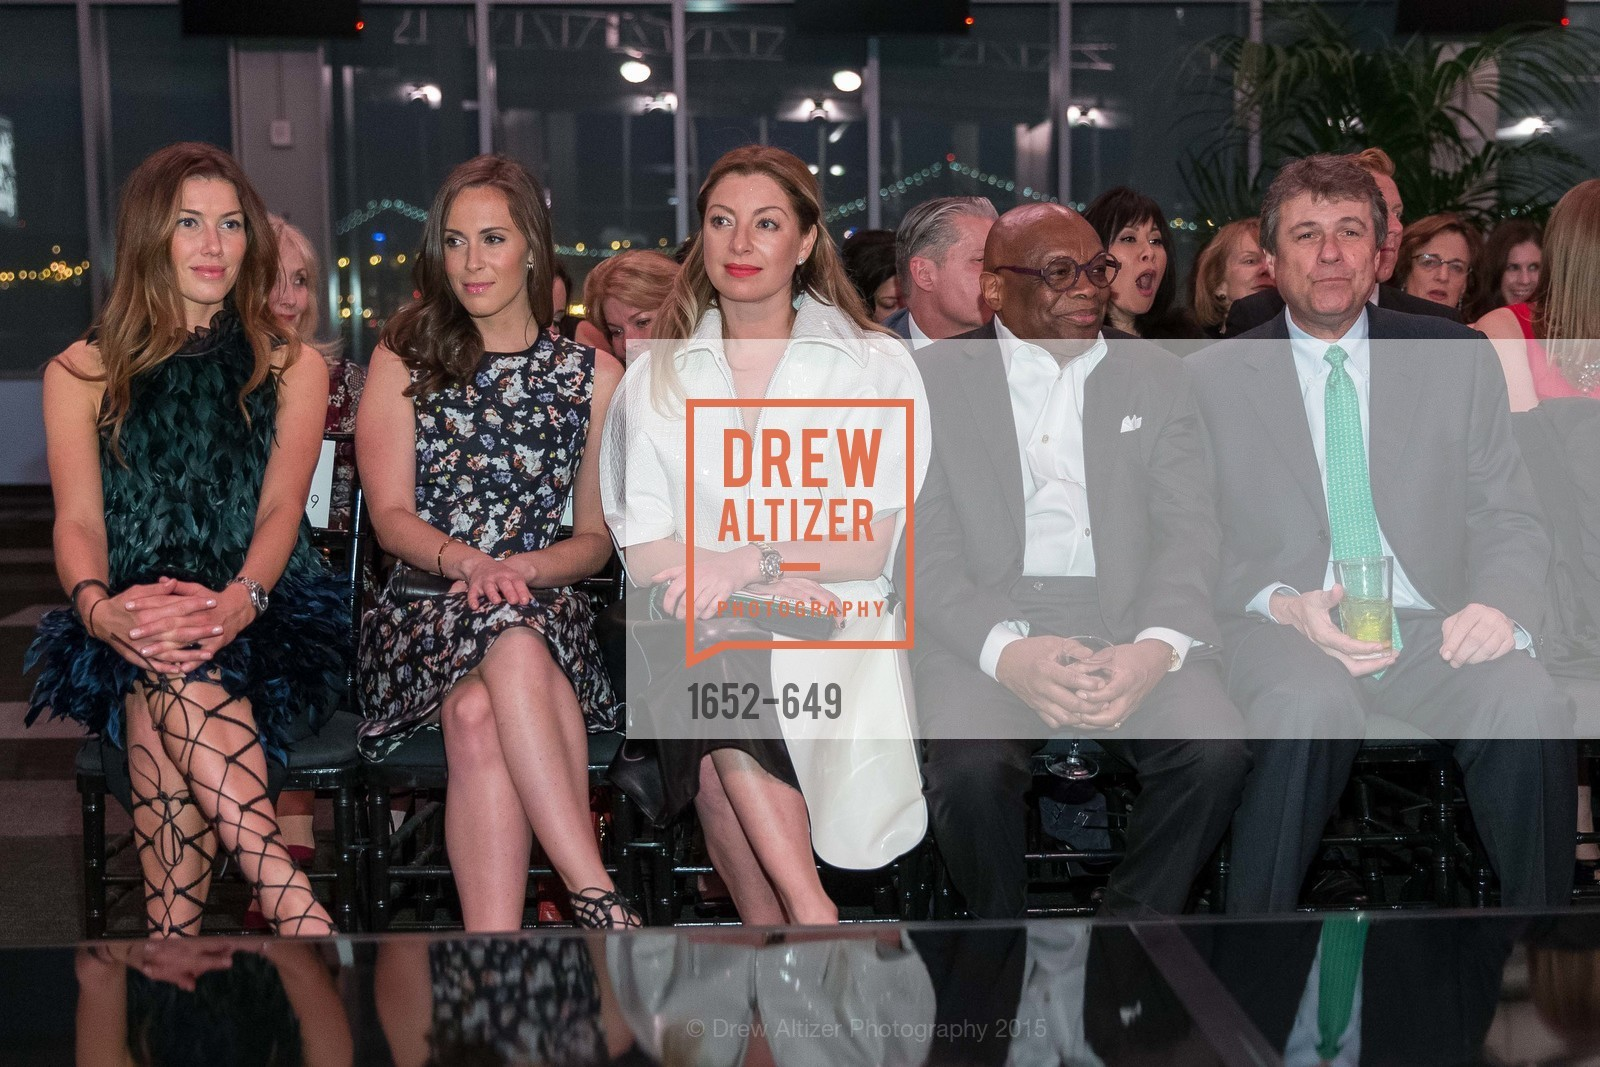 Sarah Somberg, Cierra Sherwin, Sonya Molodetskaya, Willie Brown, Stephen Massocca, Fashion Forward: An Evening with Erdem presented by SF Opera Guild and Saks Fifth Avenue, Pier 27. Pier 27, The Embarcadero, March 25th, 2015,Drew Altizer, Drew Altizer Photography, full-service agency, private events, San Francisco photographer, photographer california